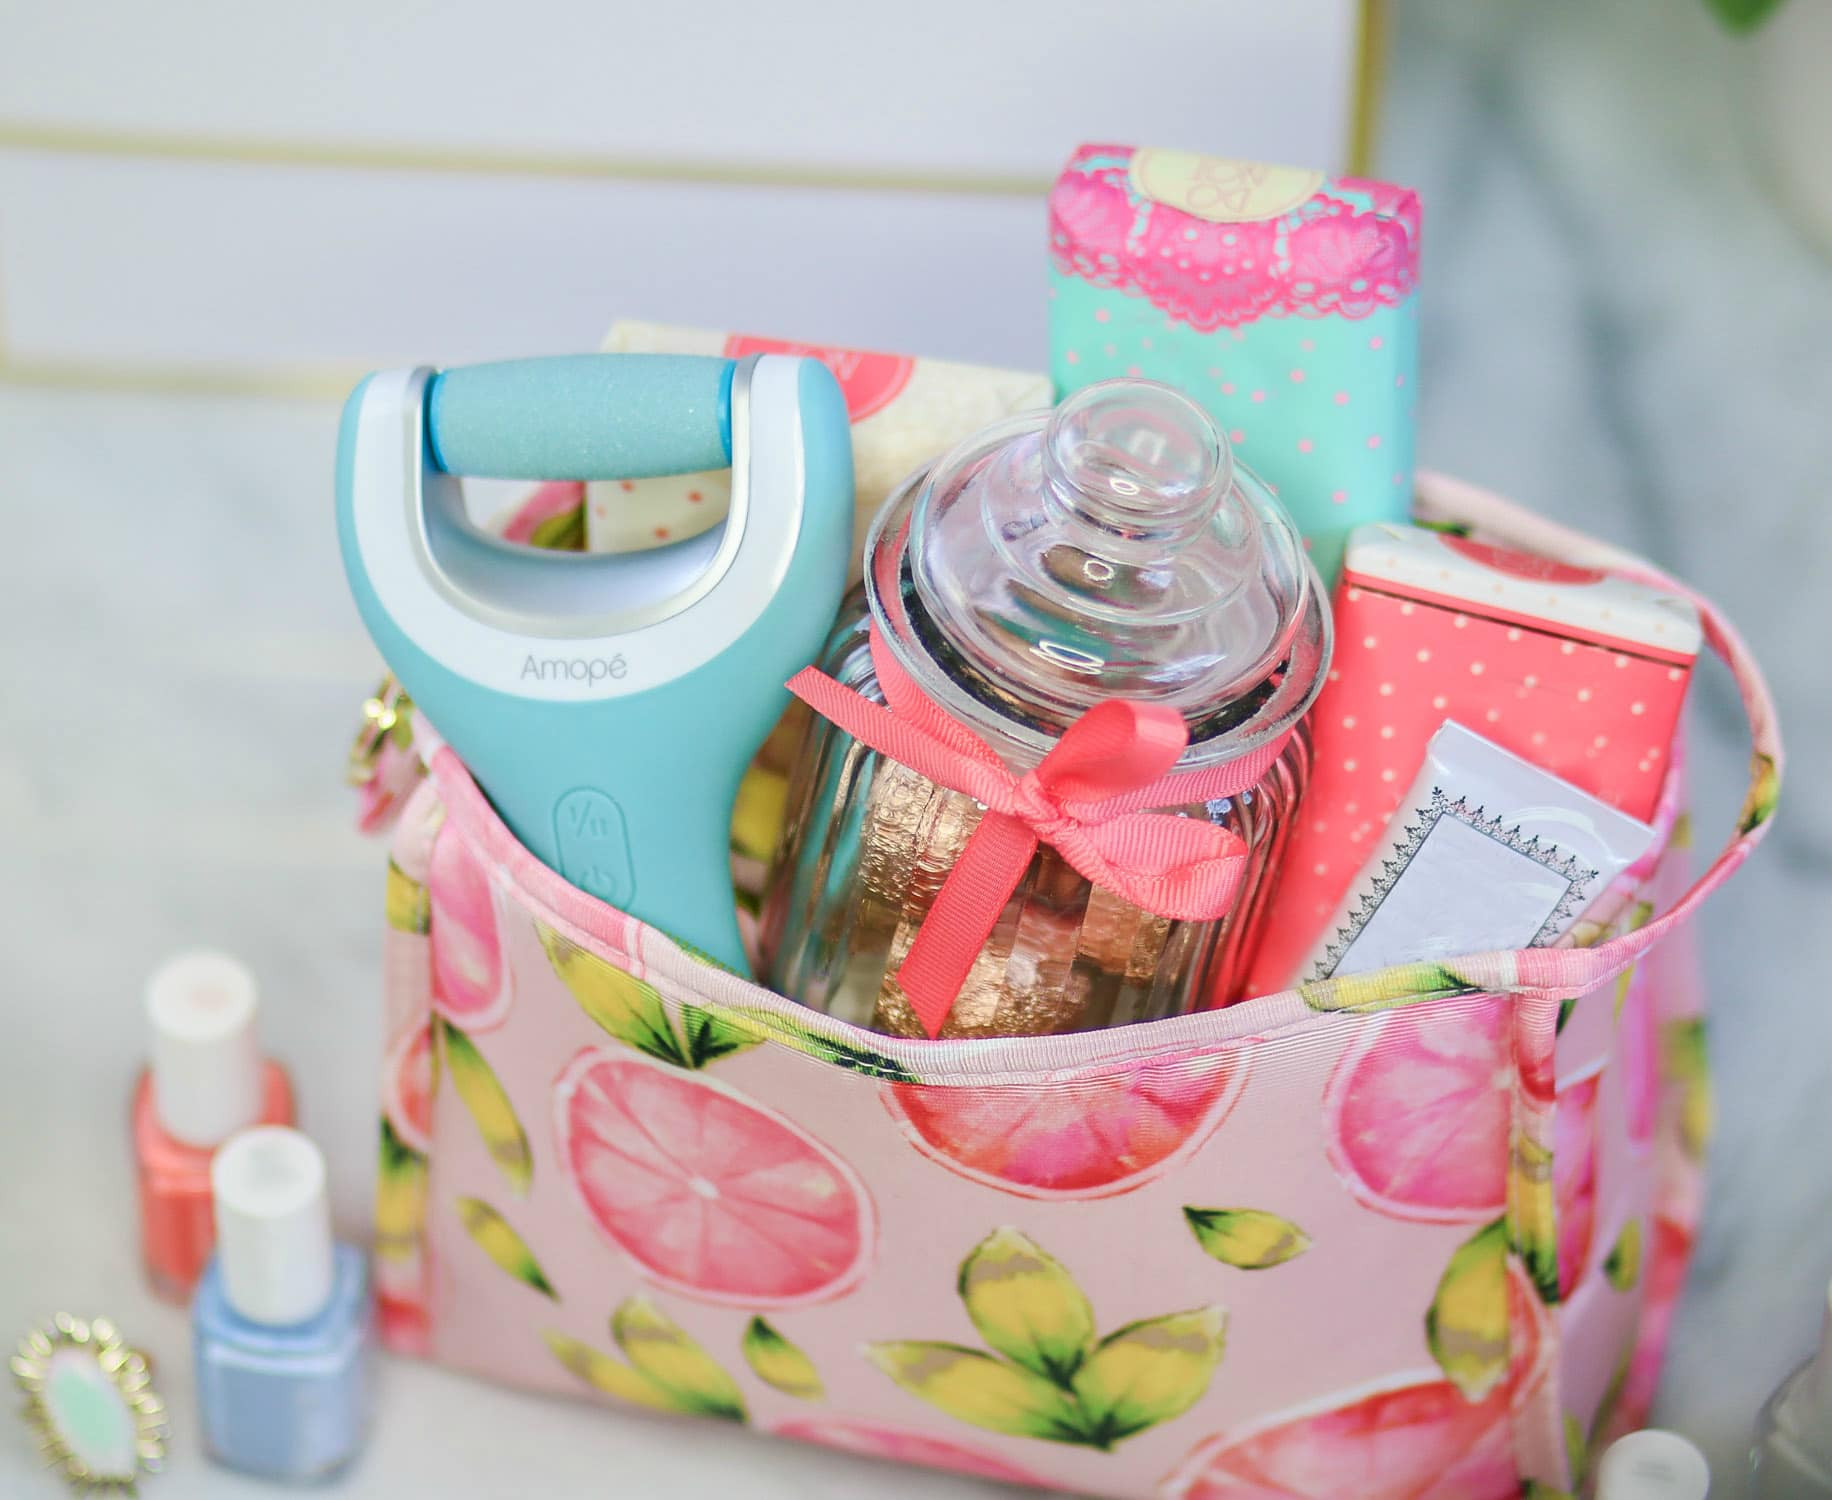 Diy Gift Ideas For Girls  Cute Gift Ideas for Your Friends